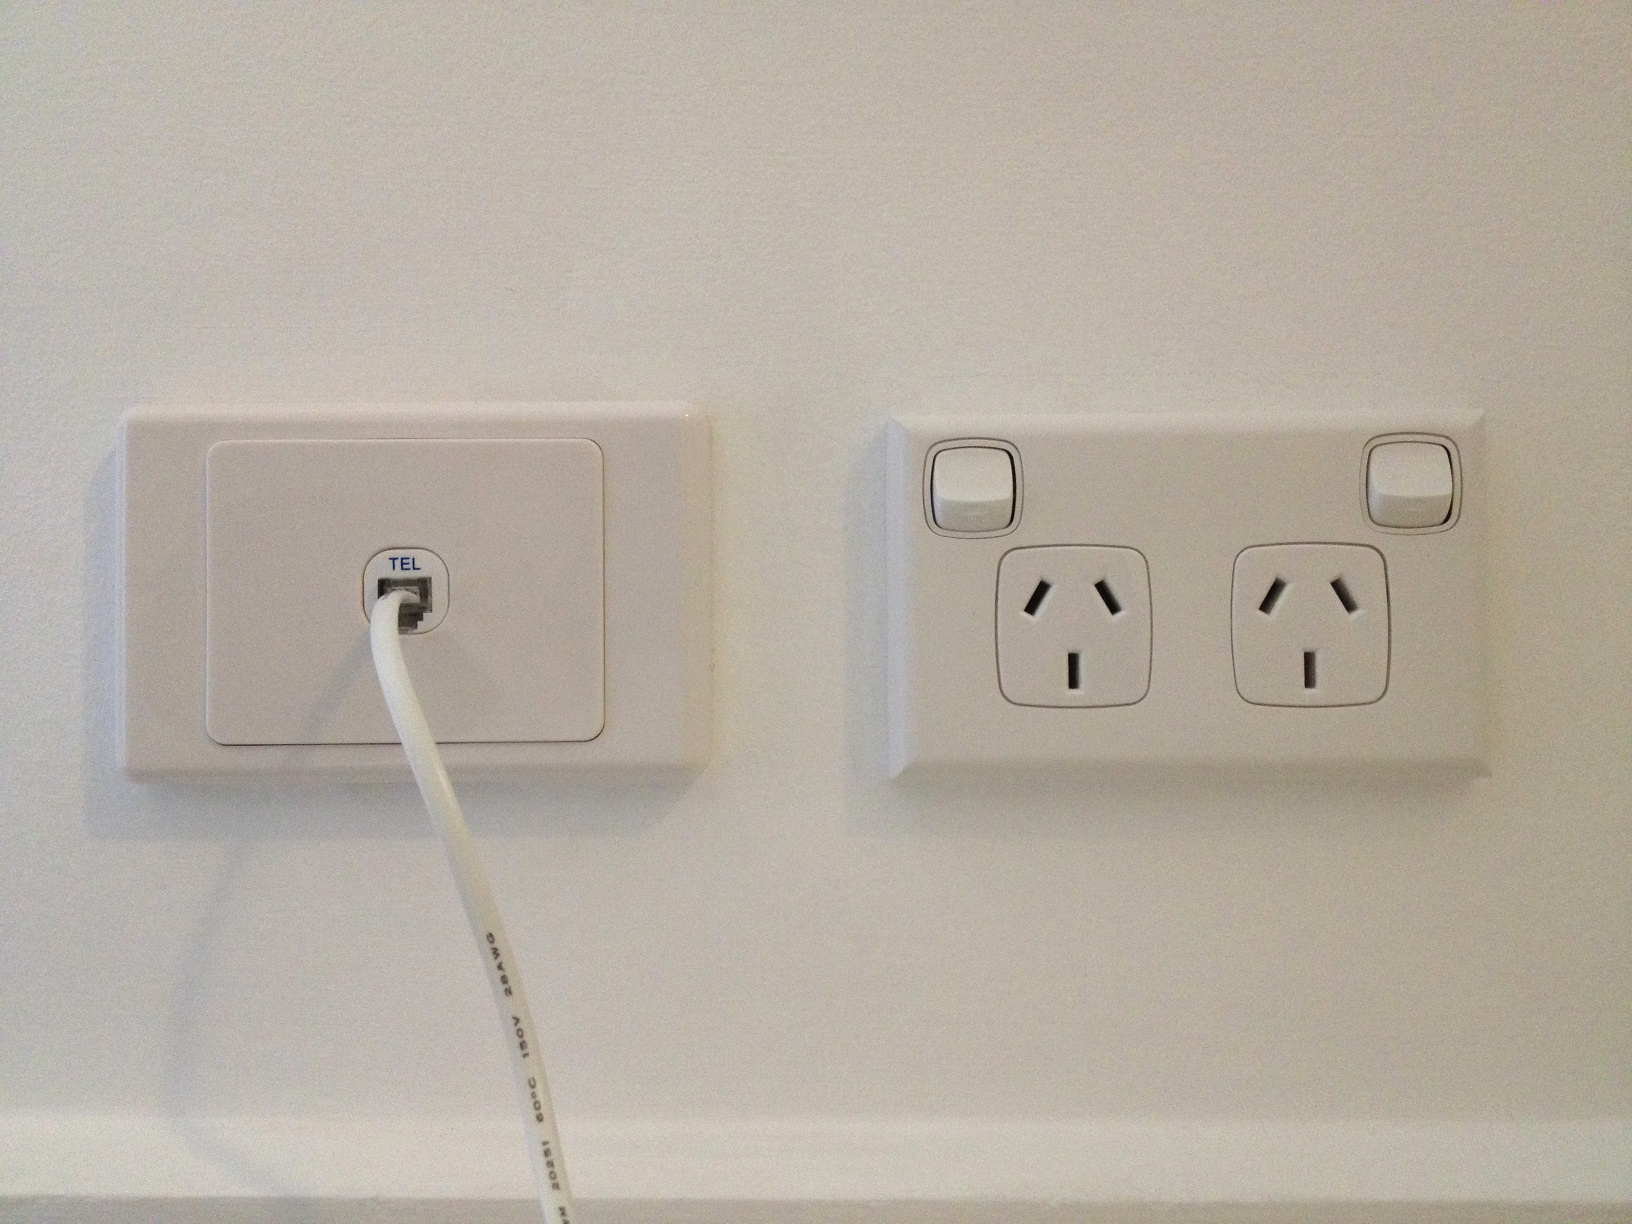 phone socket upgraded1?w=640&h=480 upgrading a 600 series phone socket to rj11 tp69 telstra wall plate wiring diagram at sewacar.co